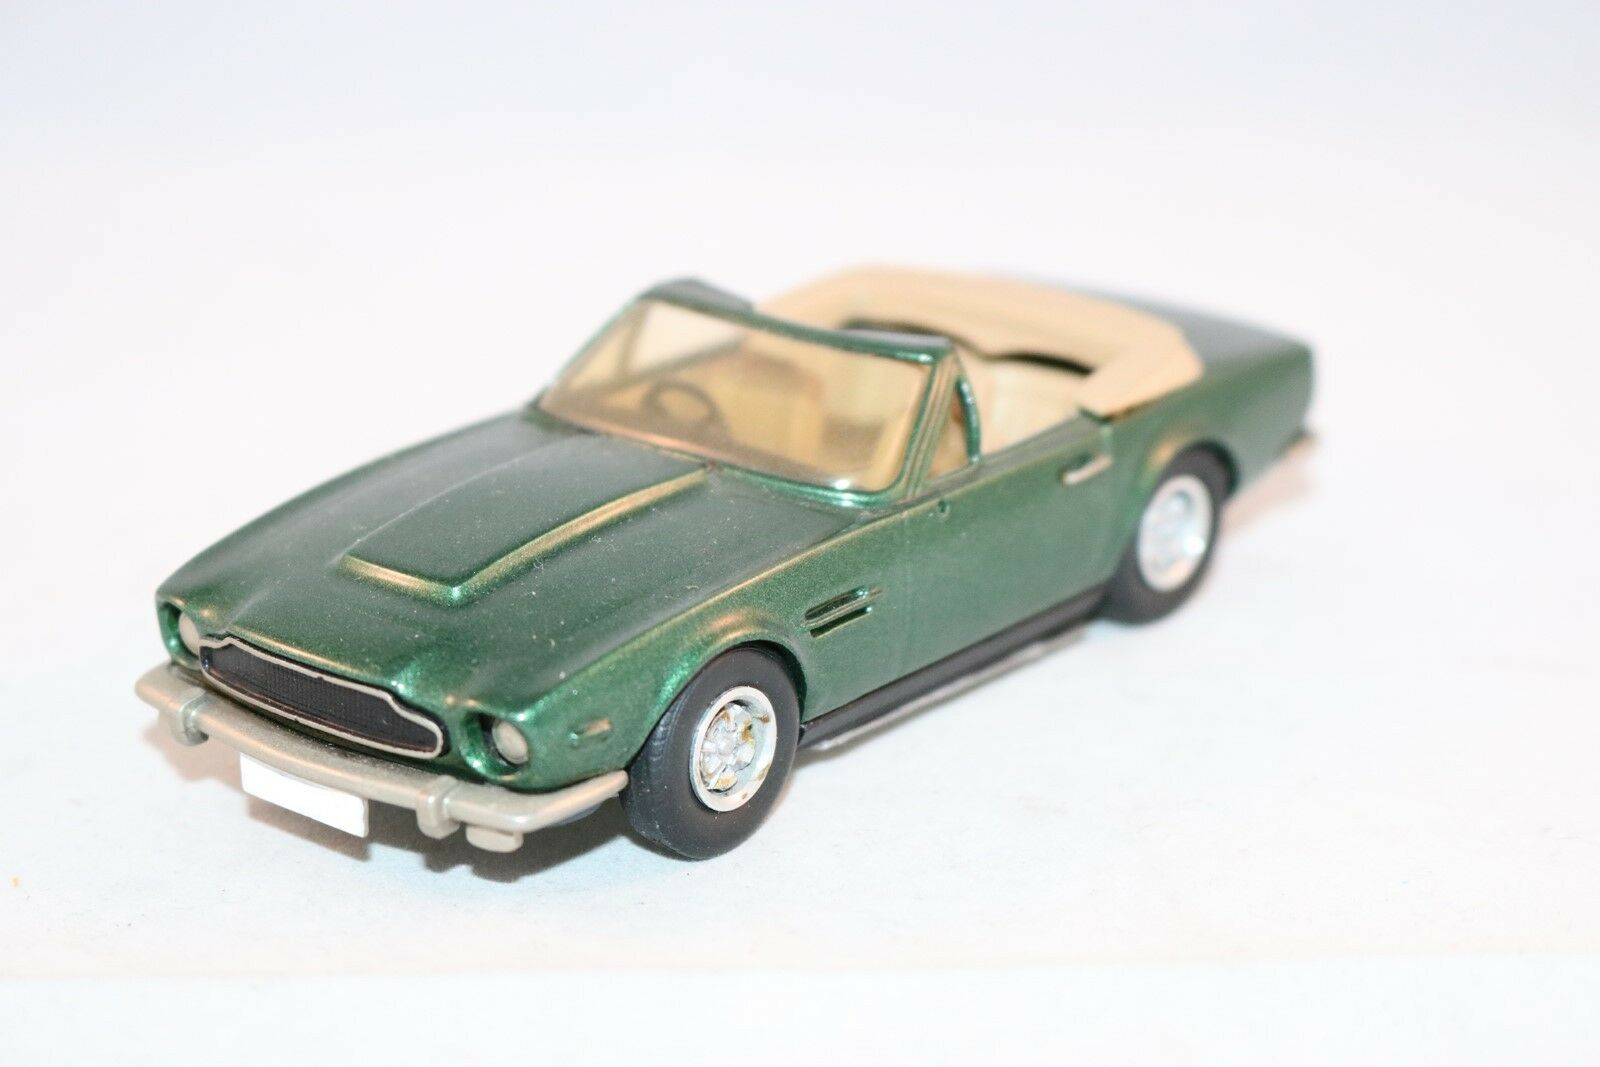 Western Models Aston Martin V8  in mint condition in 1 43